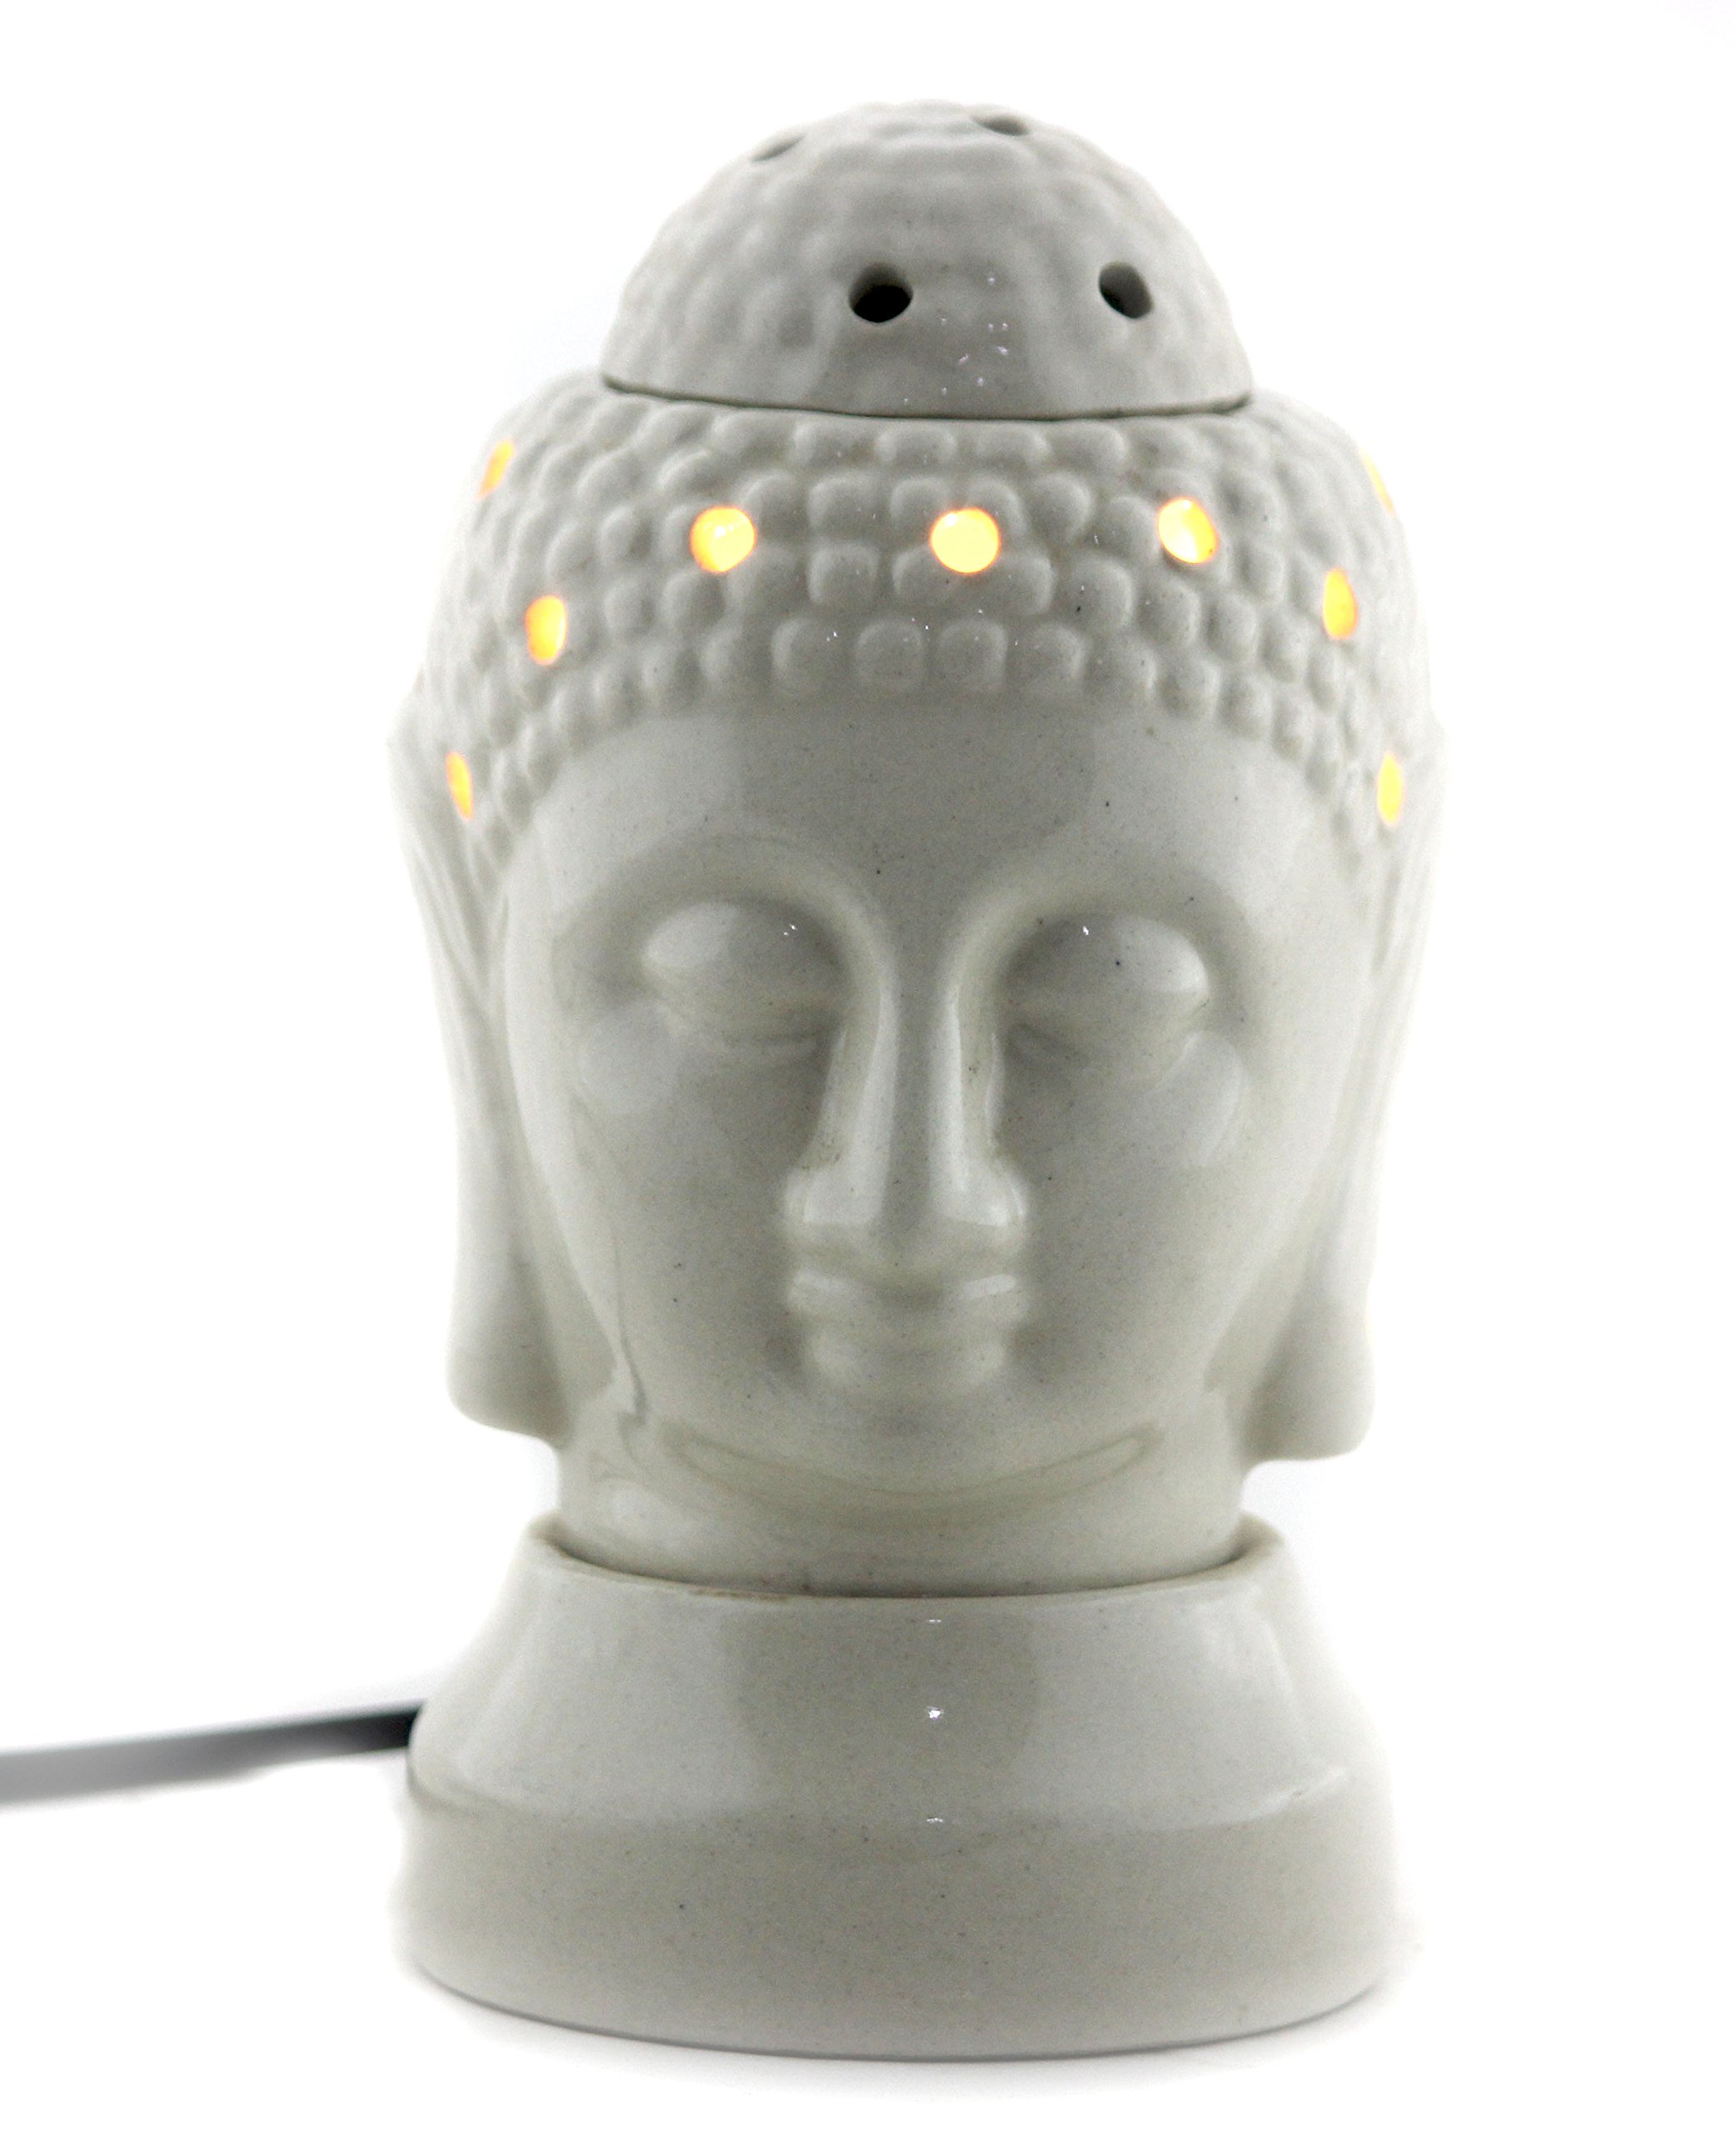 Brahmz Ceramic Electric Aroma Oil Burner Corded Oil Warmer Wired Aroma Diffuser Essential Oil Diffuser Aromtherapy Lamp Electric Buddha OCER-92 (White)